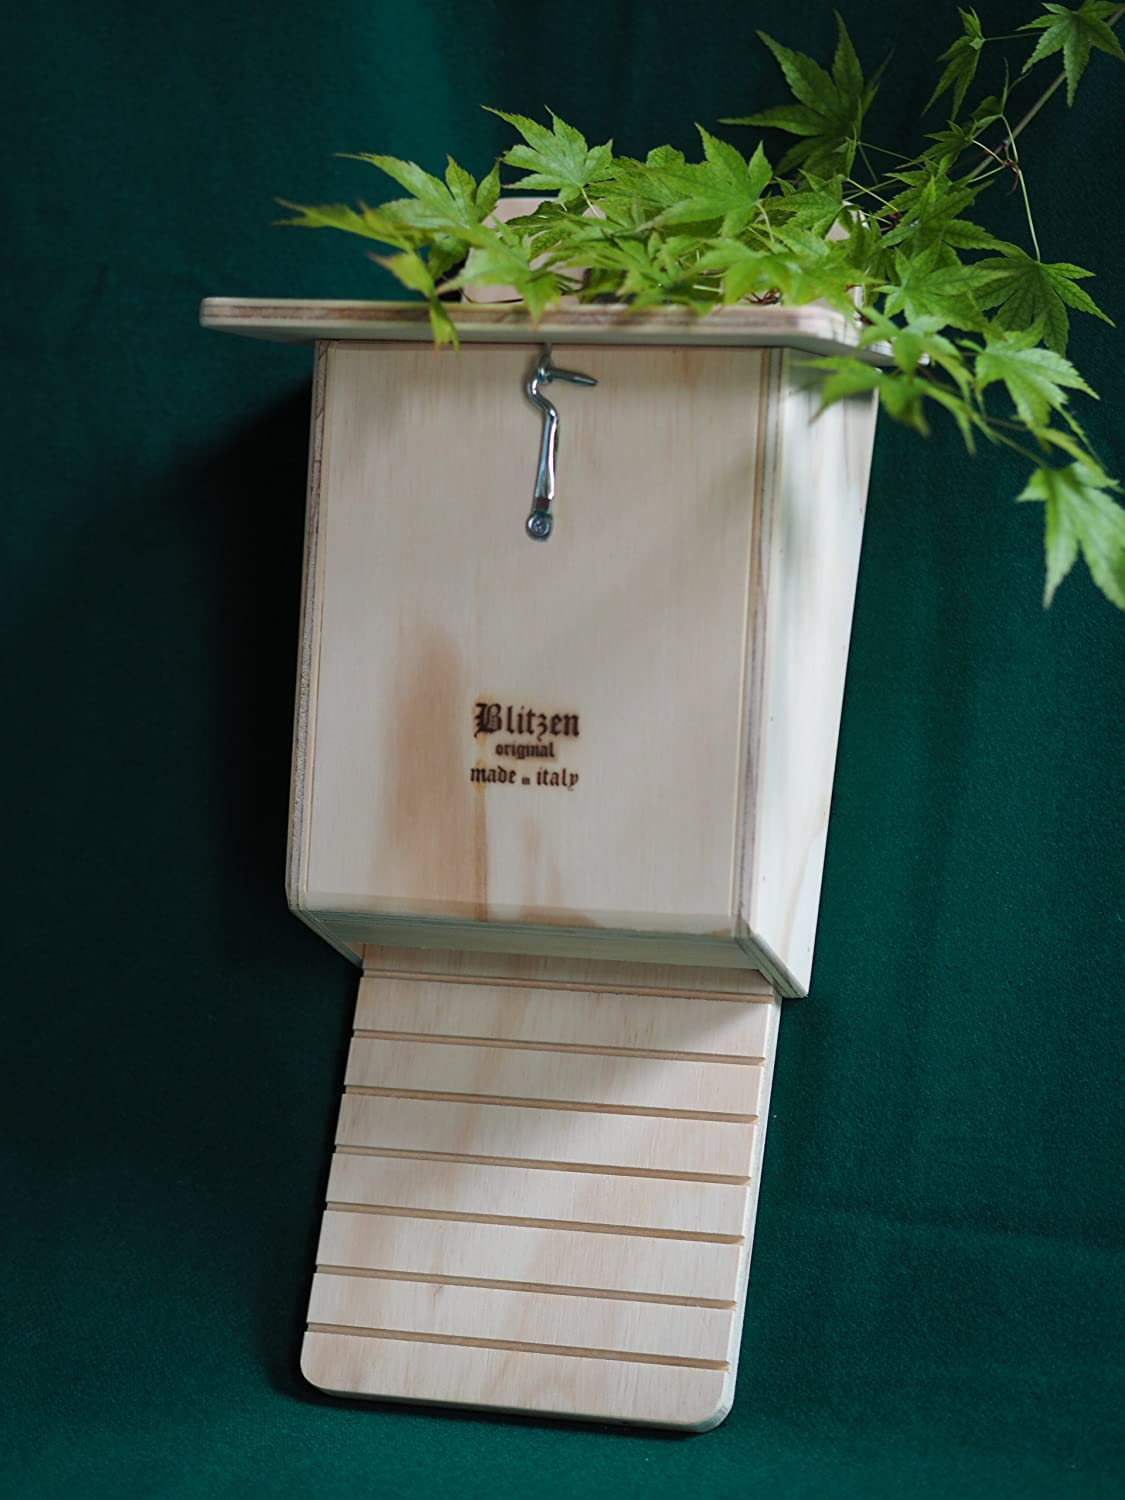 CHECKABLE BAT BOX AGAINST MOSQUITOS Professional Blitzen made in Italy 100%